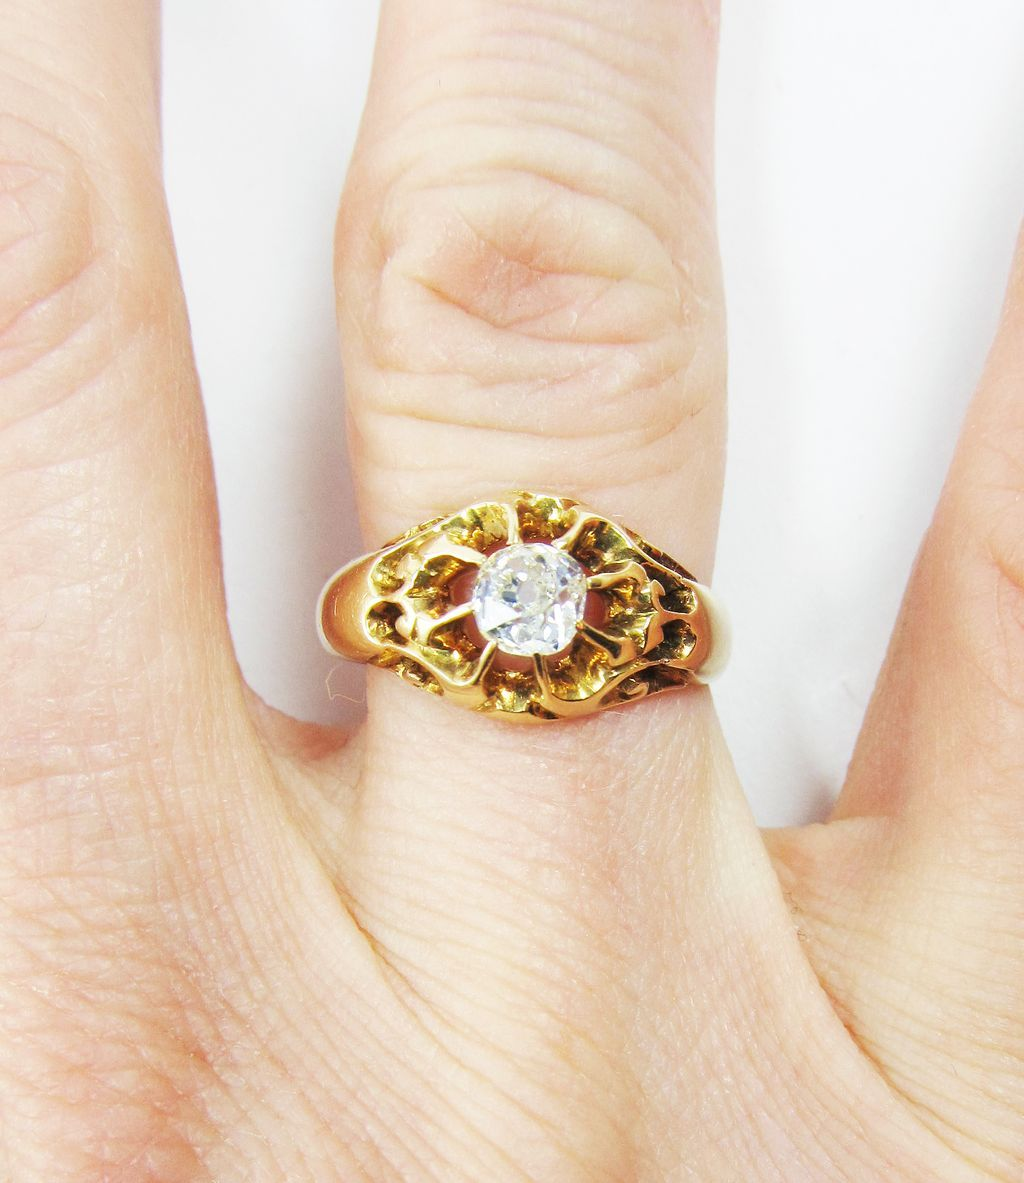 DAZZLING Victorian 1/2 Ct. OMC Diamond Solitaire/15k Ring, c.1880!